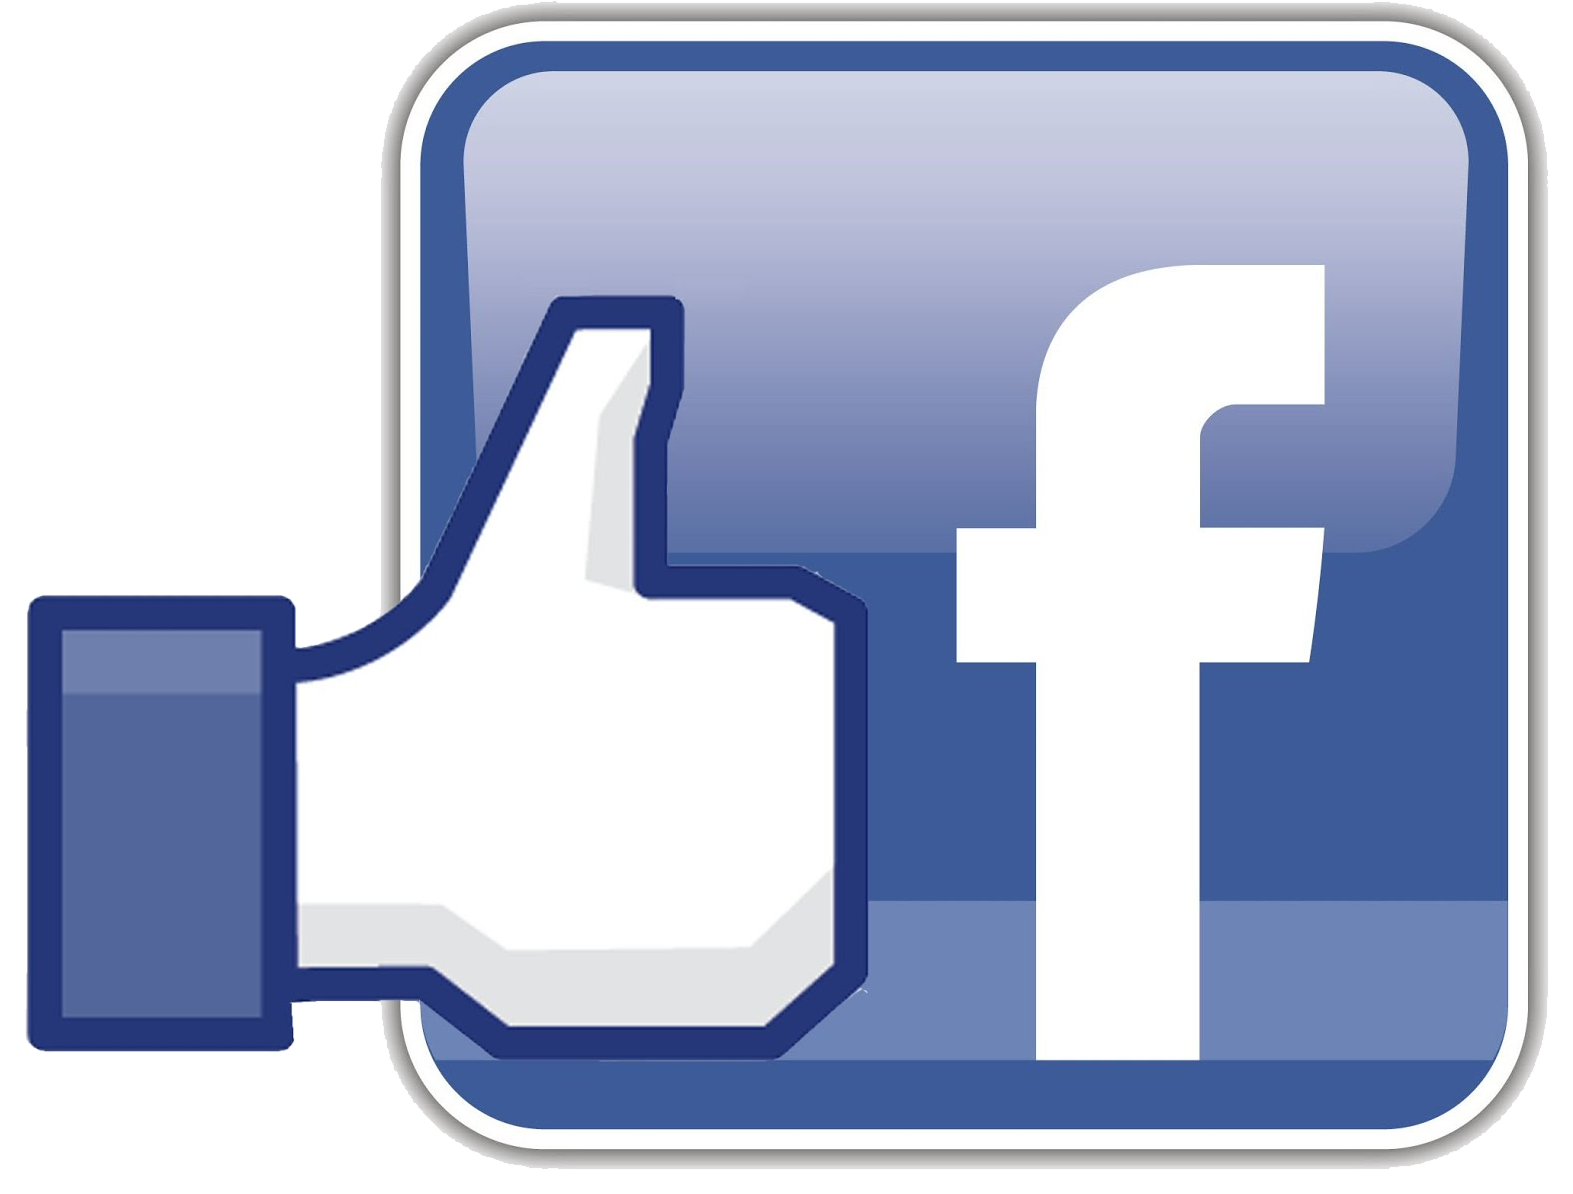 Icone do facebook clipart royalty free library Icones do facebook clipart images gallery for free download ... royalty free library